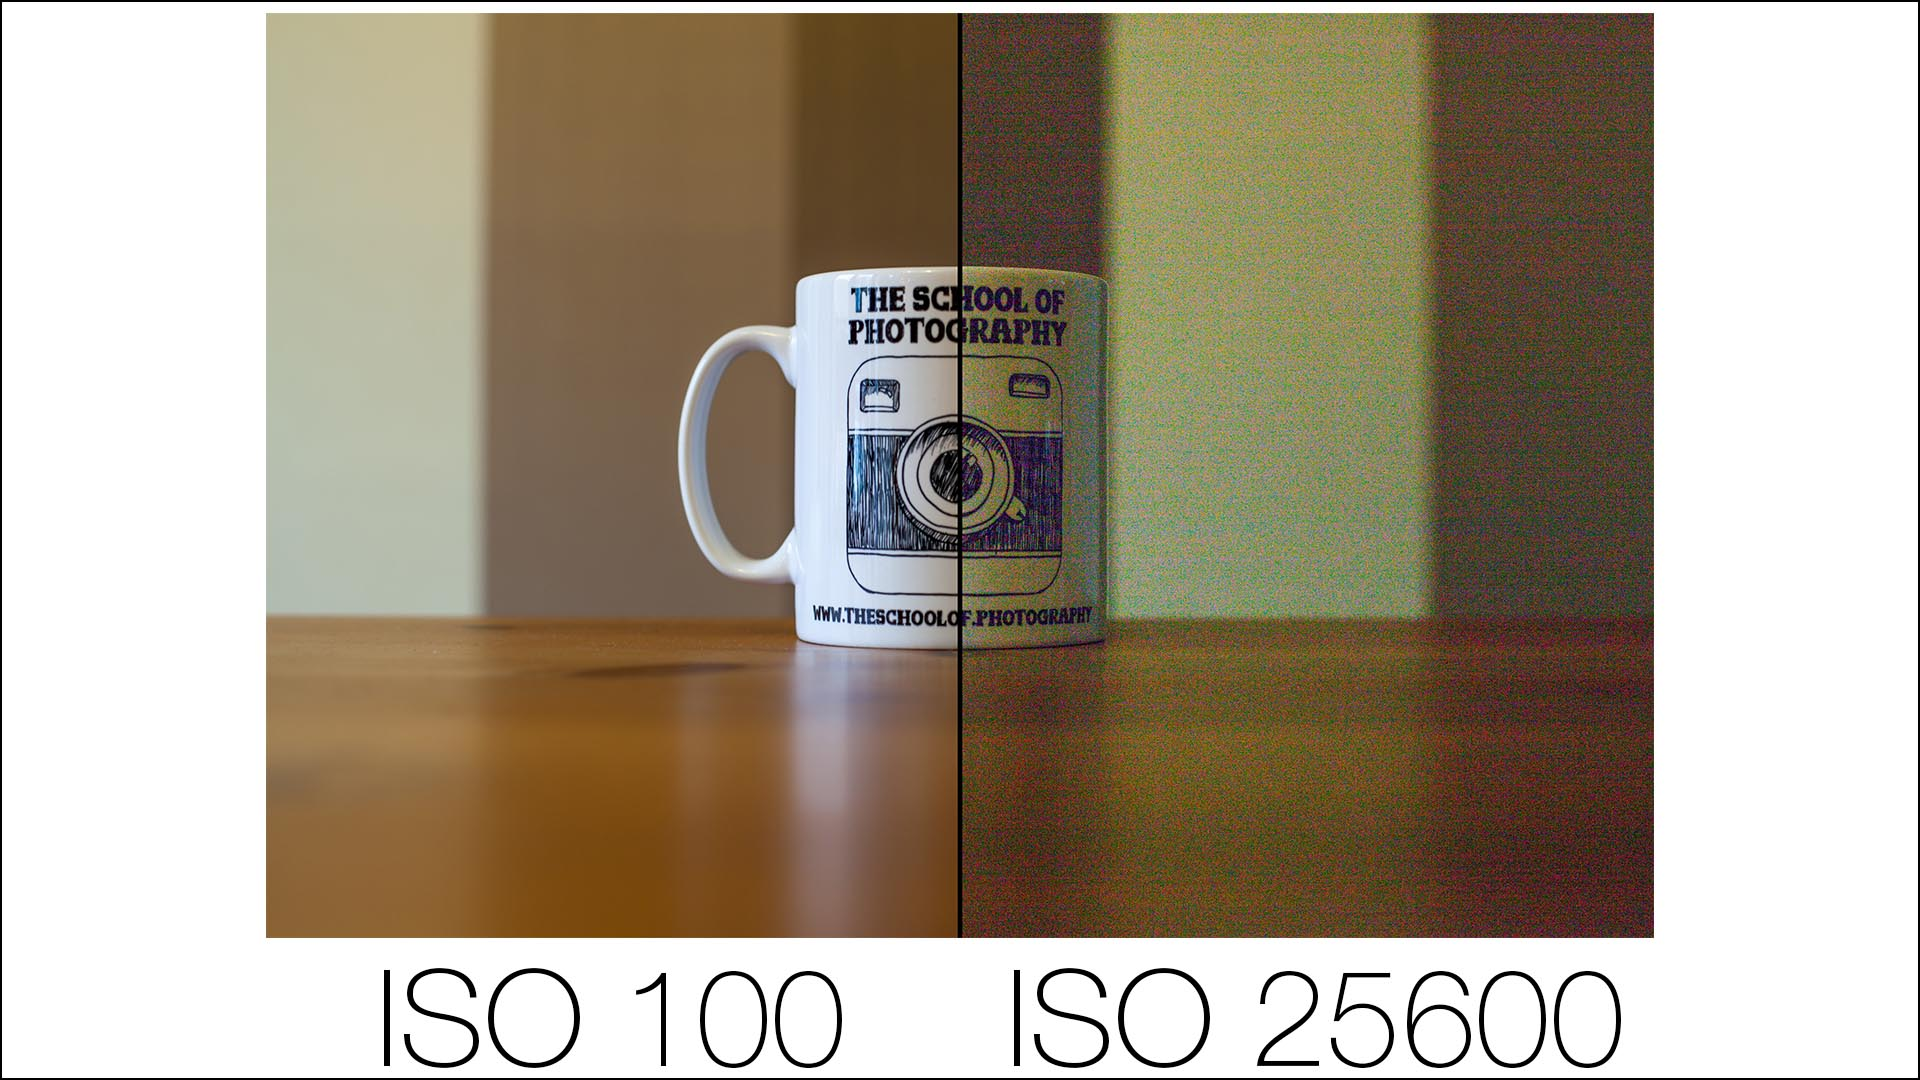 Chapter 8 – ISO - Here you will examine what ISO is and how you can control it to reduce noise in your shots. Via a set task you will learn how to use your camera's ISO setting so you can control it manual and adapt it for various situations.